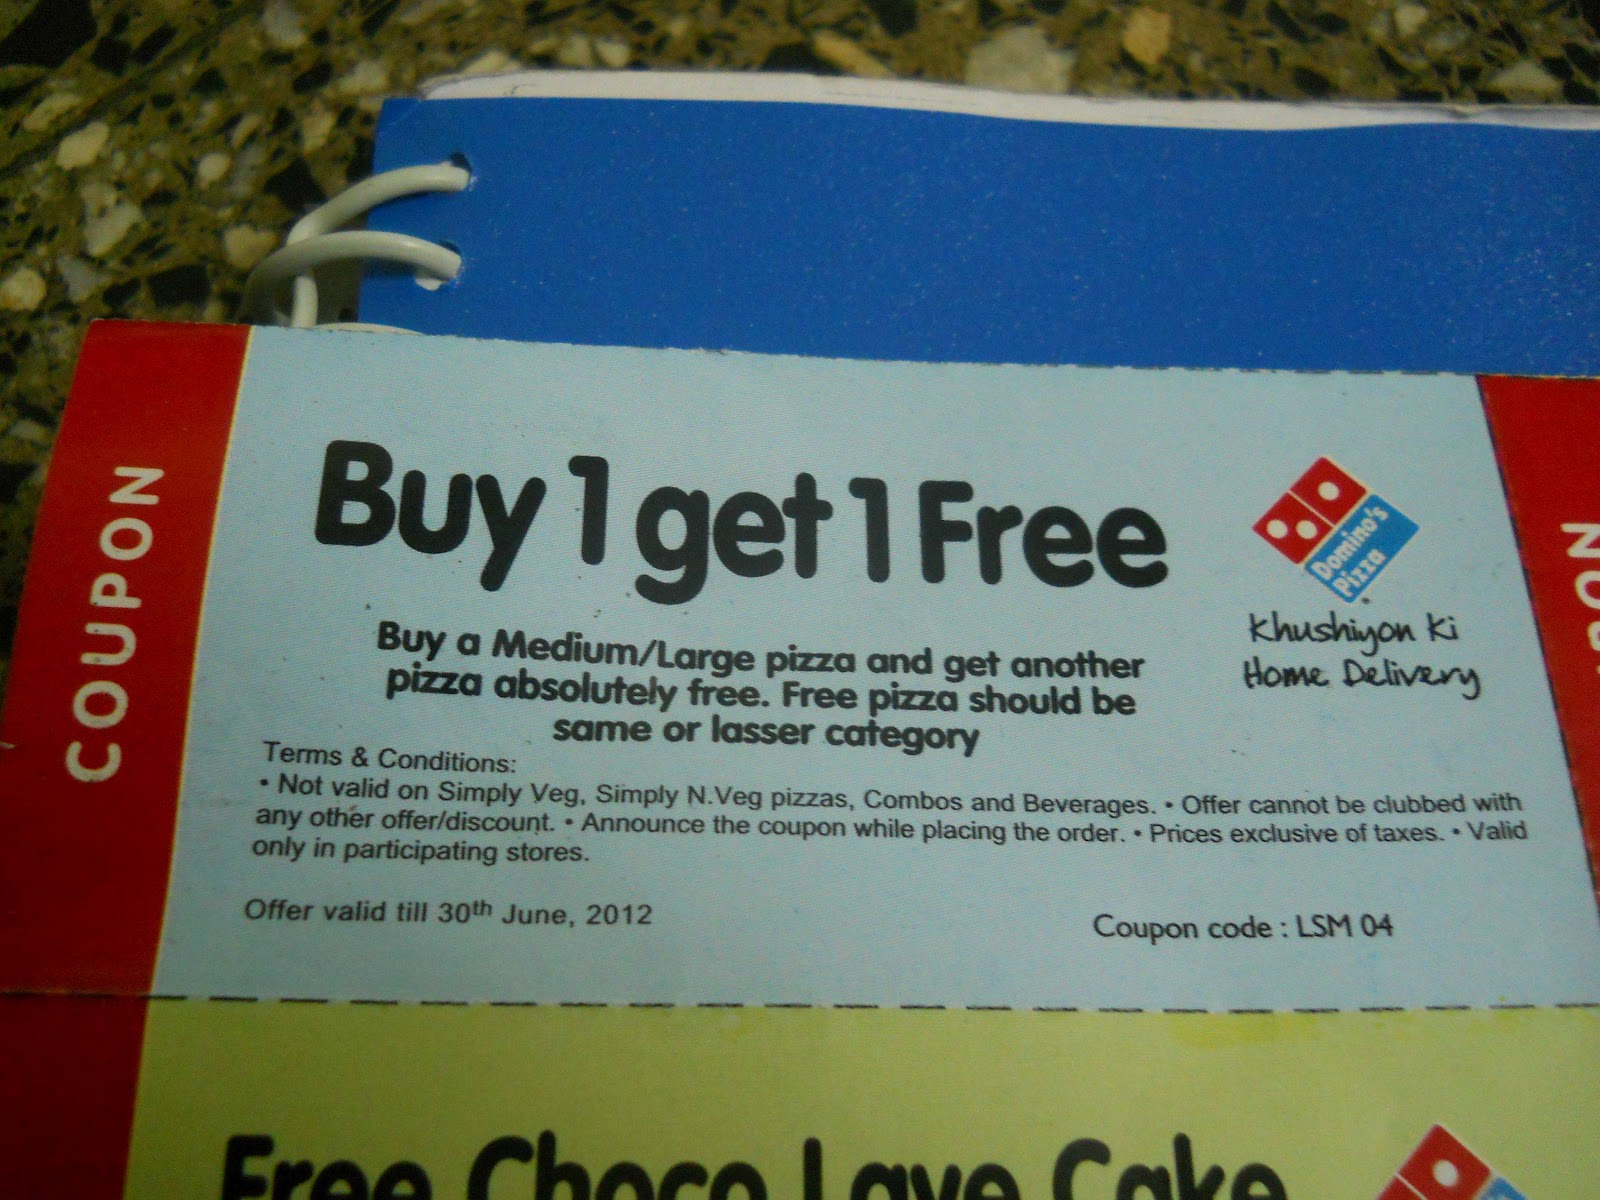 Dominos discount coupons buy 1 get 1 free